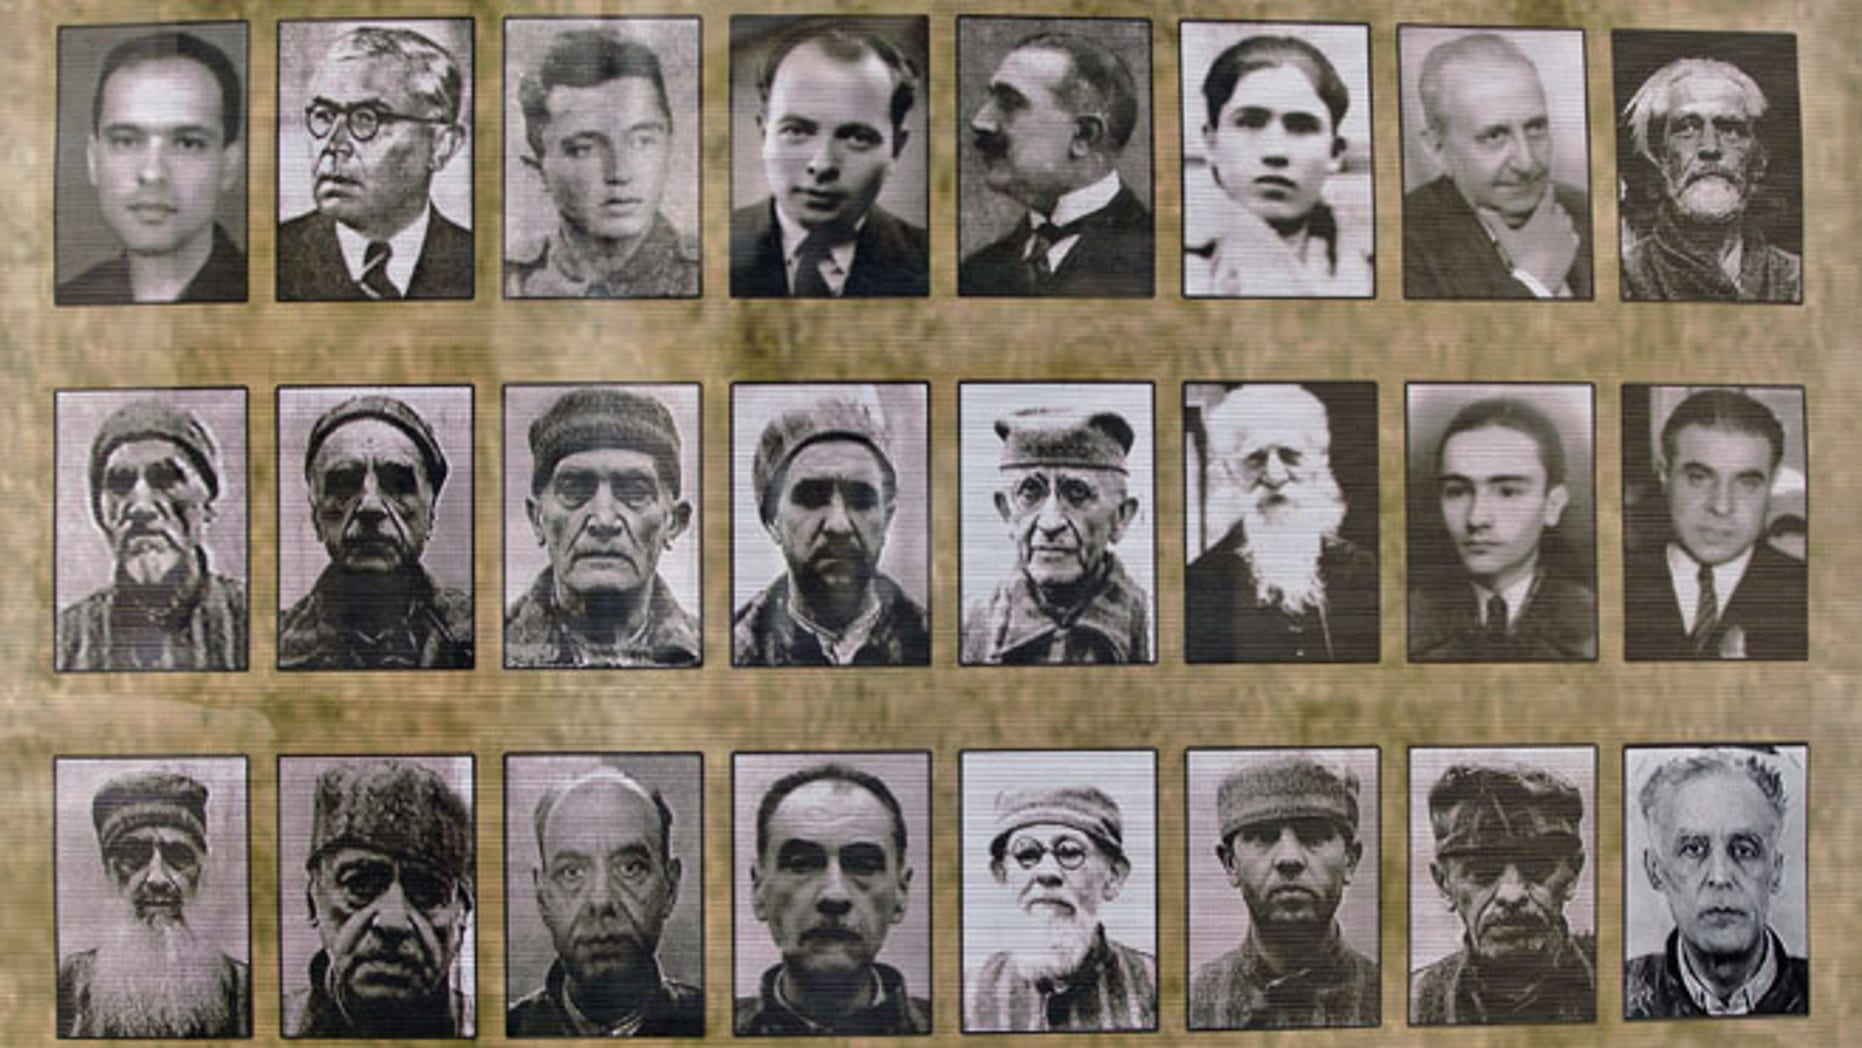 May 9, 2013: Pictures of deportees and prisoners are on display, in Bucharest, Romania, at the opening of a permanent memorial exhibition for the victims of the communist regime persecutions. (AP Photo/Vadim Ghirda)